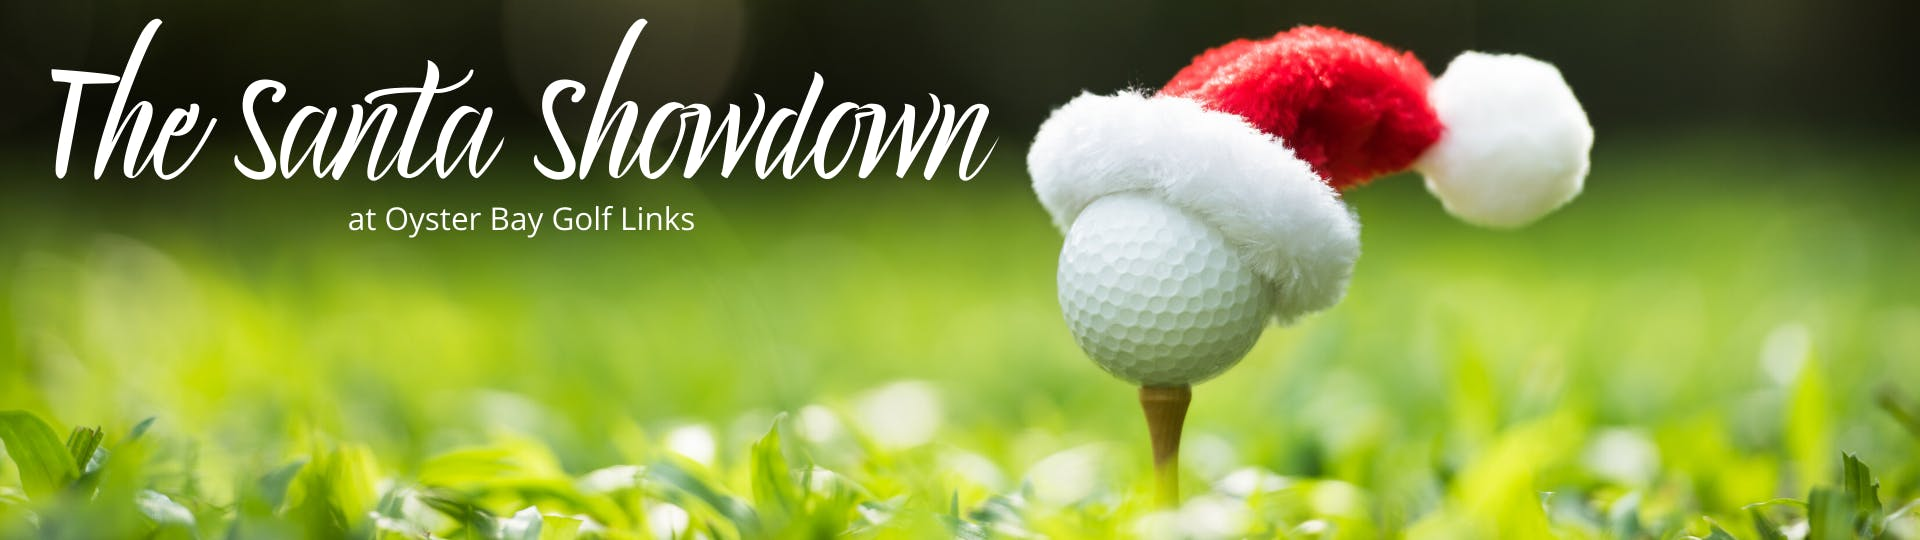 Image of Santa hat on a golf ball. The Santa Showdown at Oyster Bay Golf Links